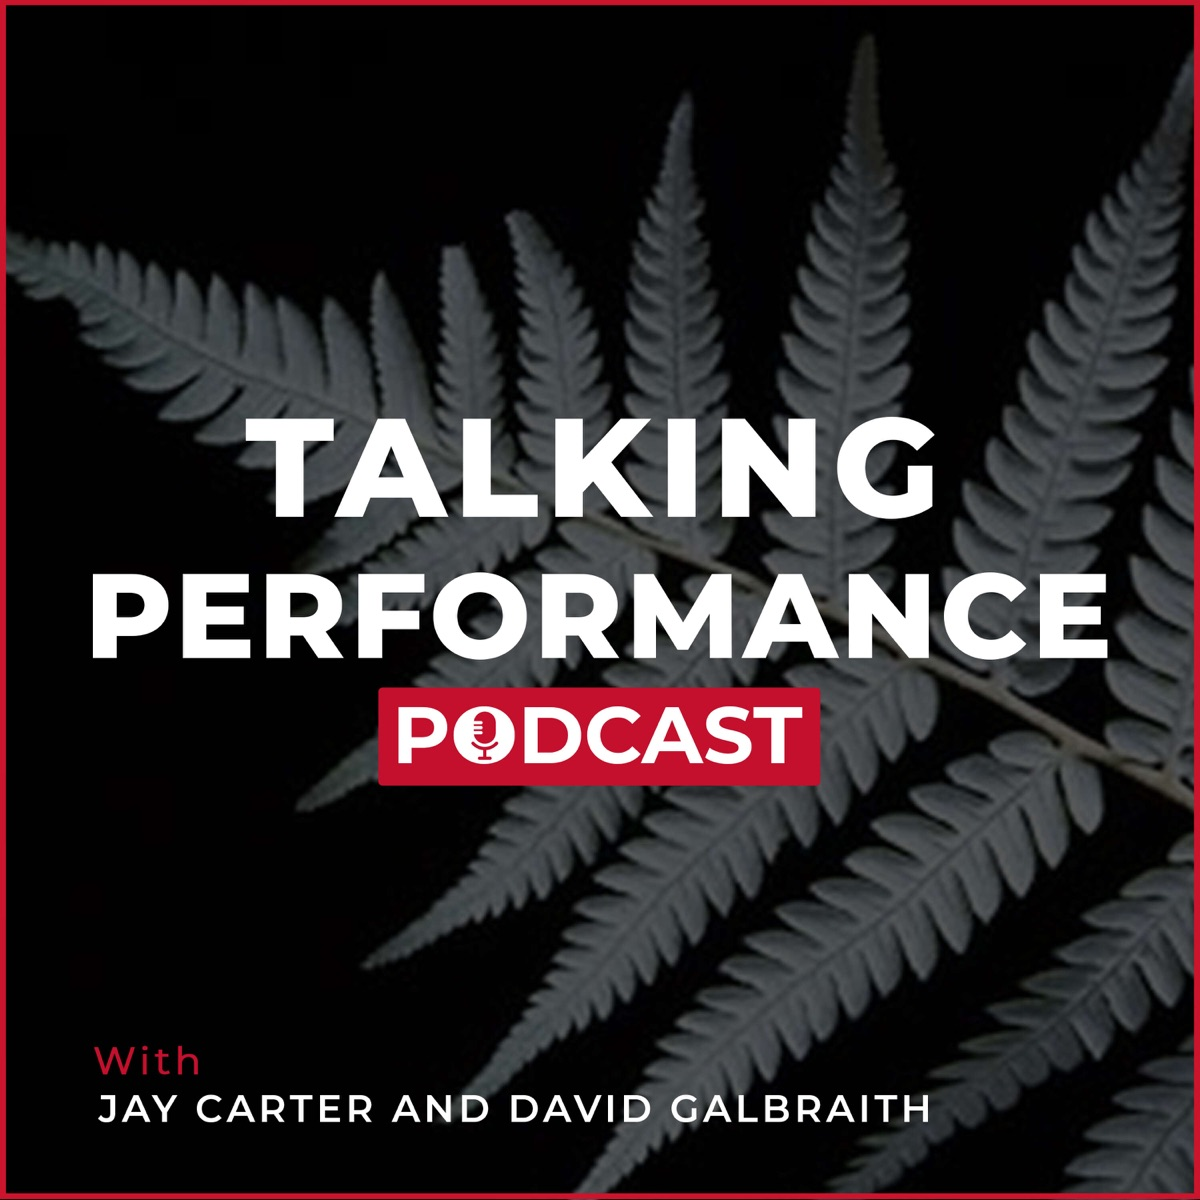 Talking Performance Episode 31 Interviewing DG